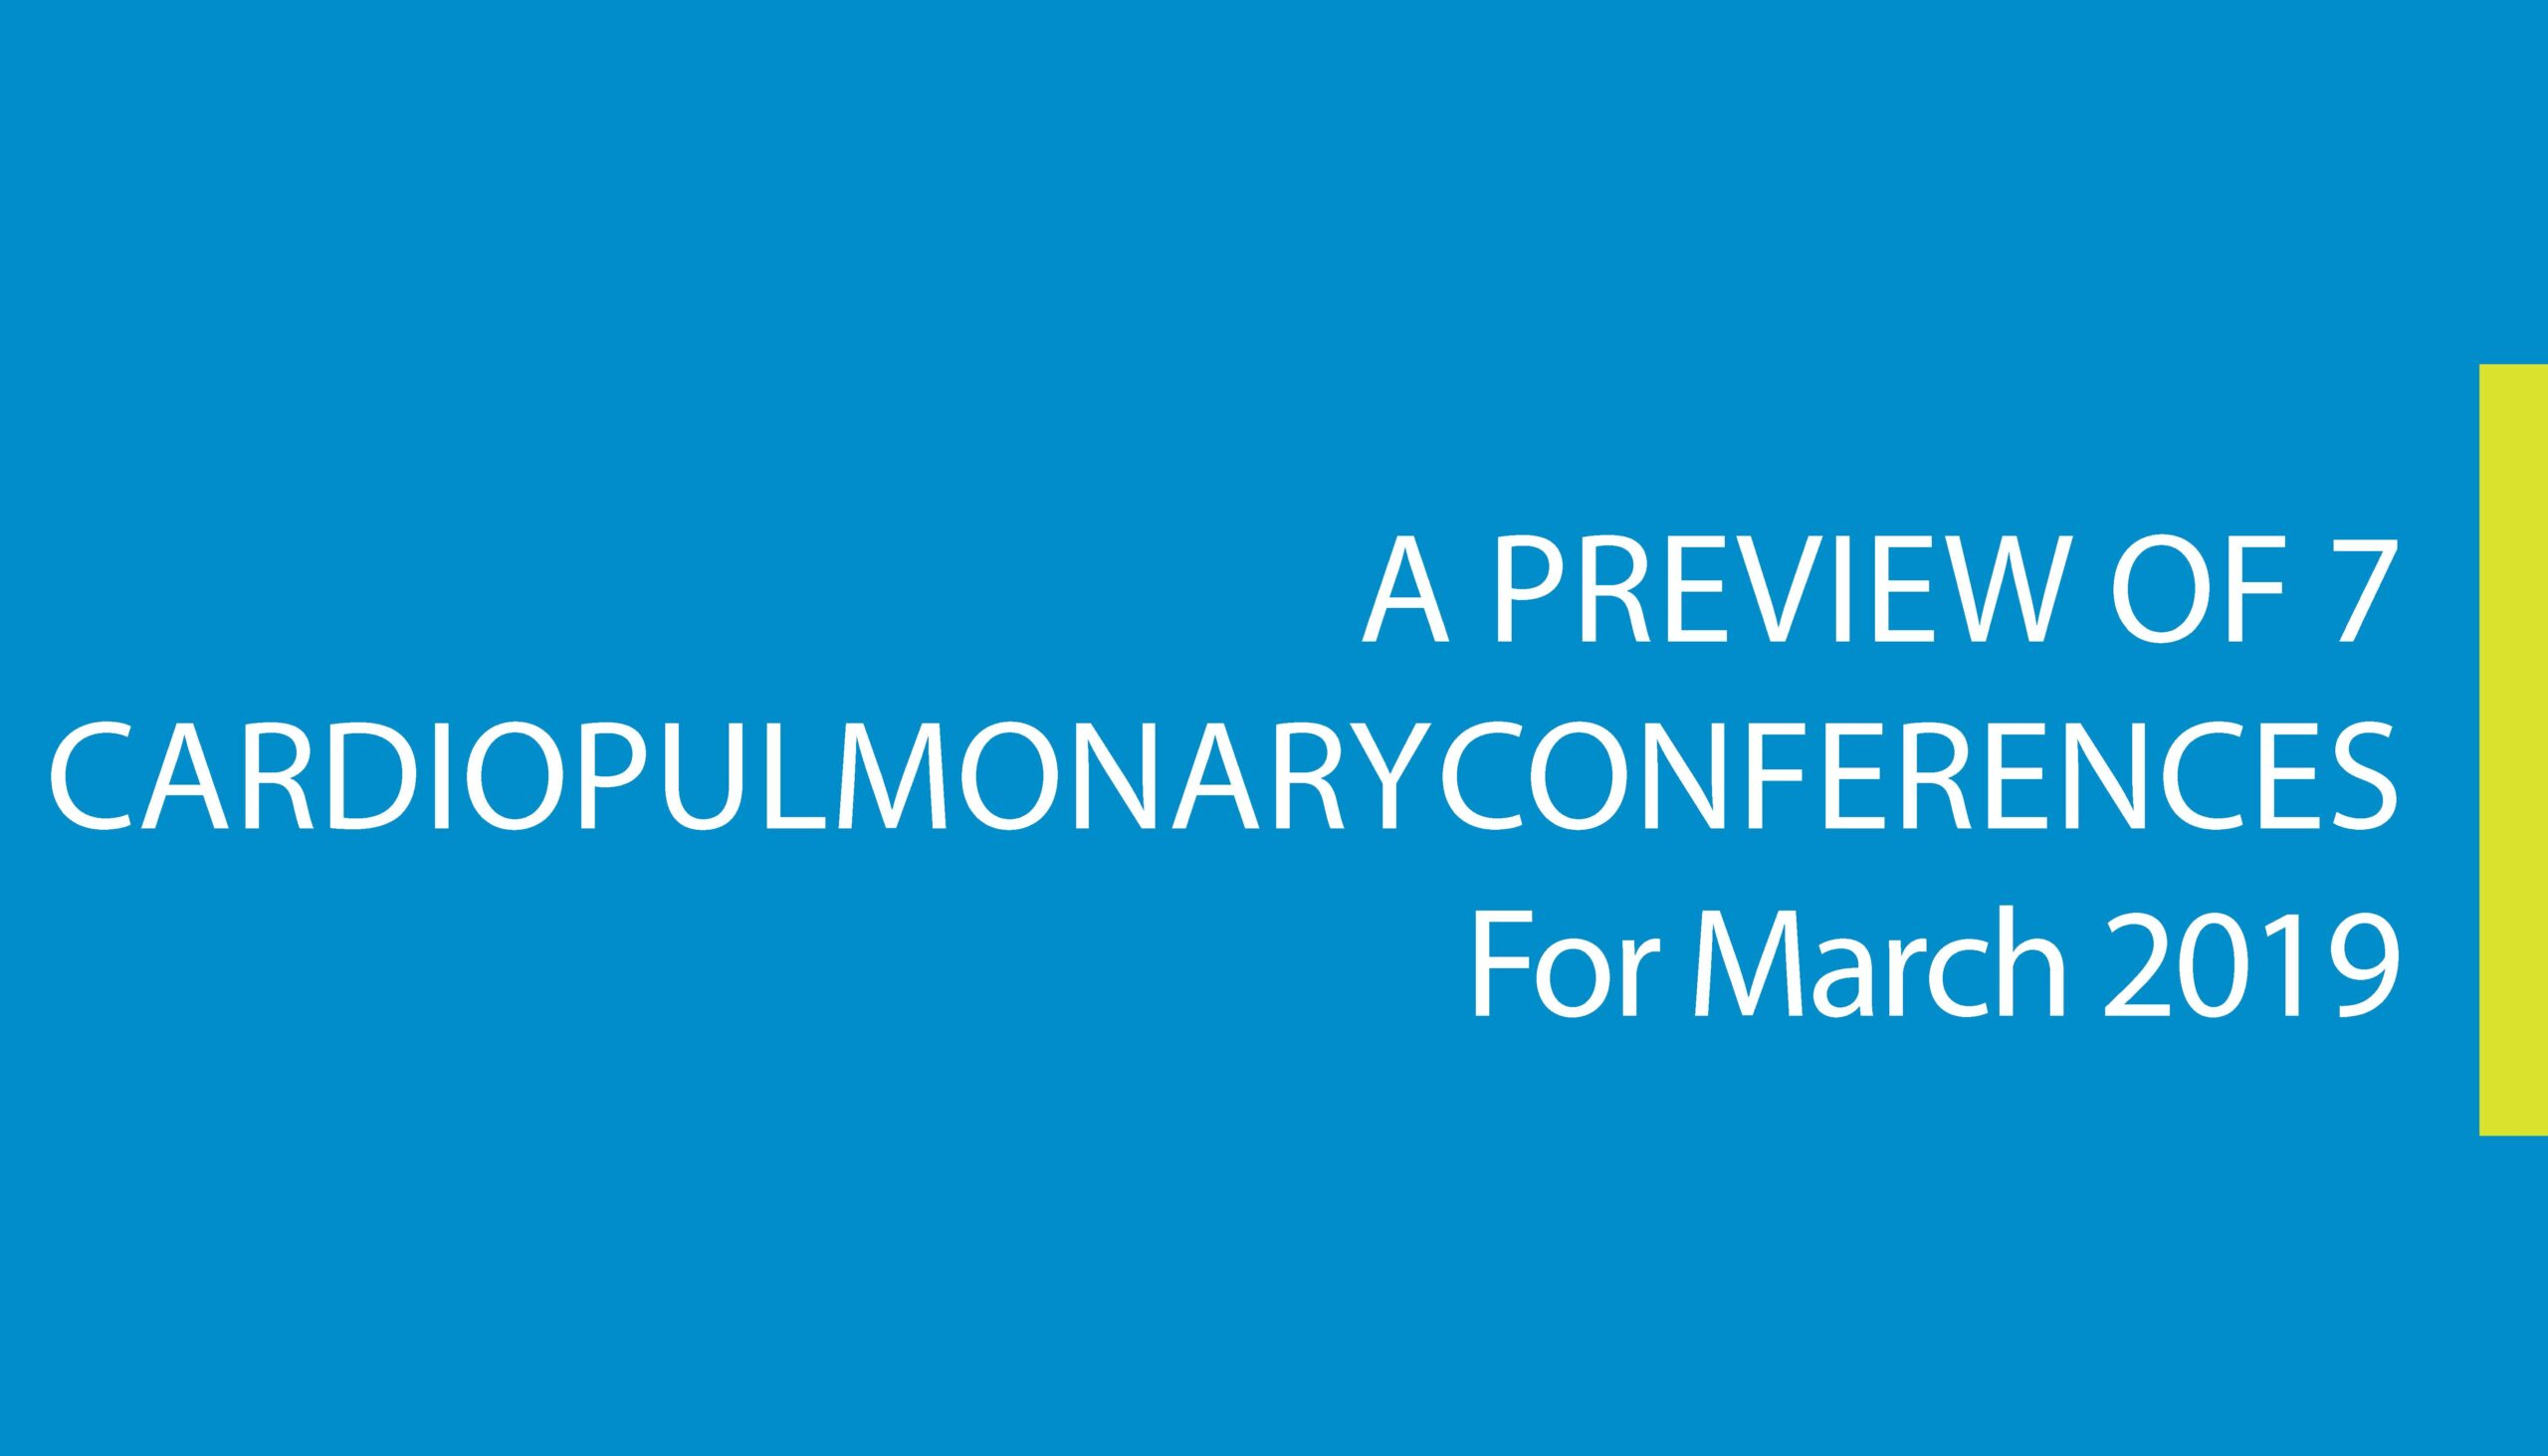 Upcoming Conferences in March